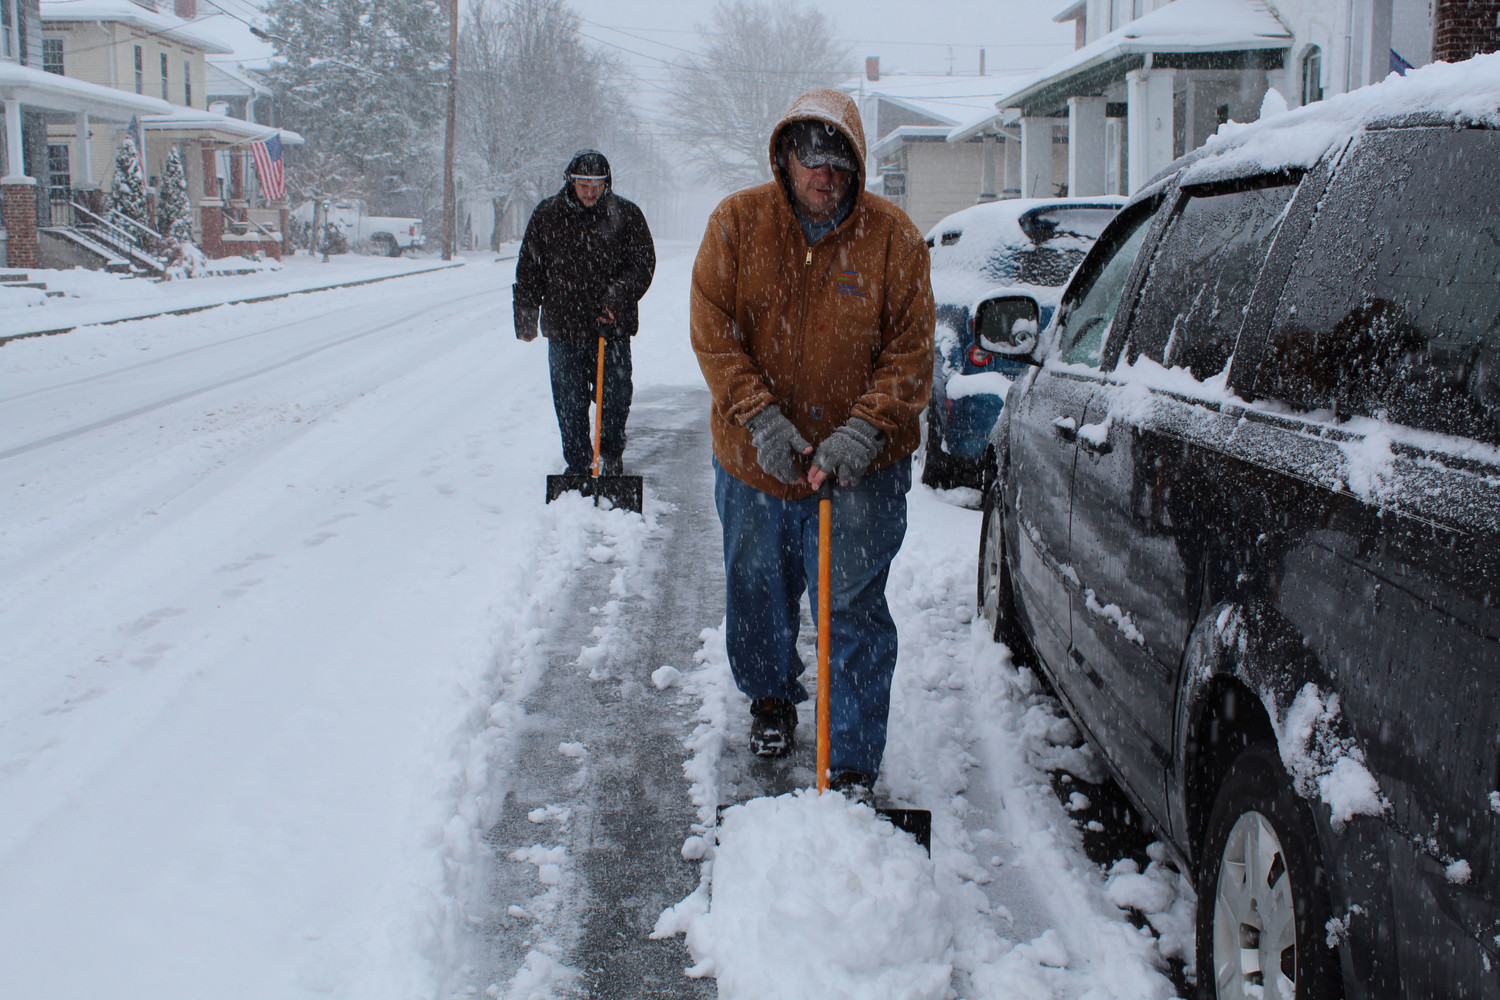 Randy Kennedy and Tyler Bangert cleared snow from the street.